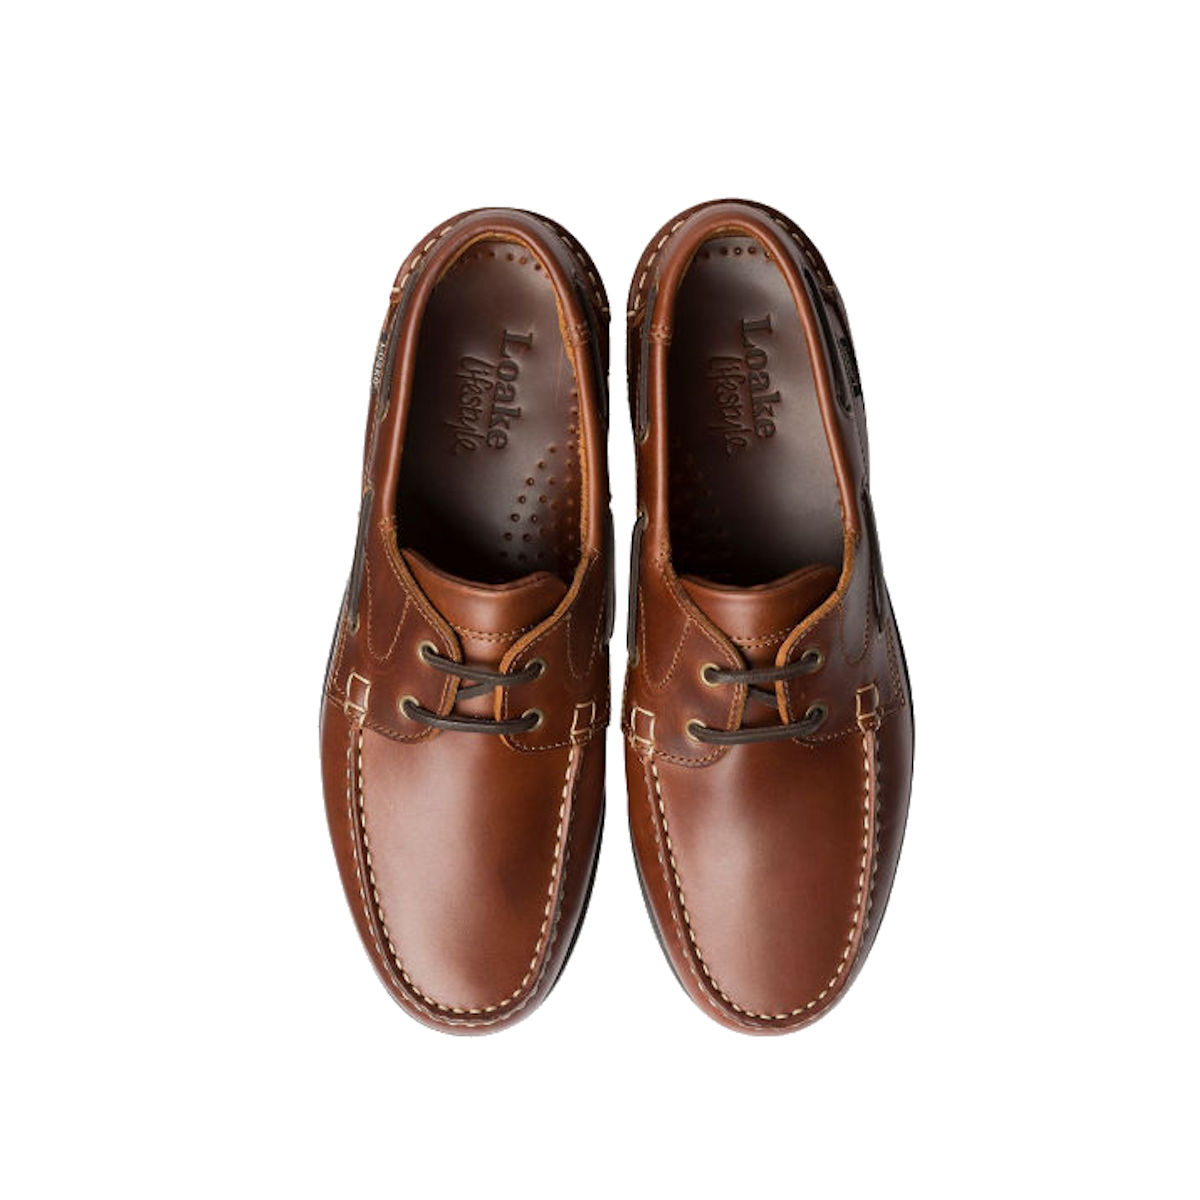 Loake 524 CH - Mens Brown Deck Shoes